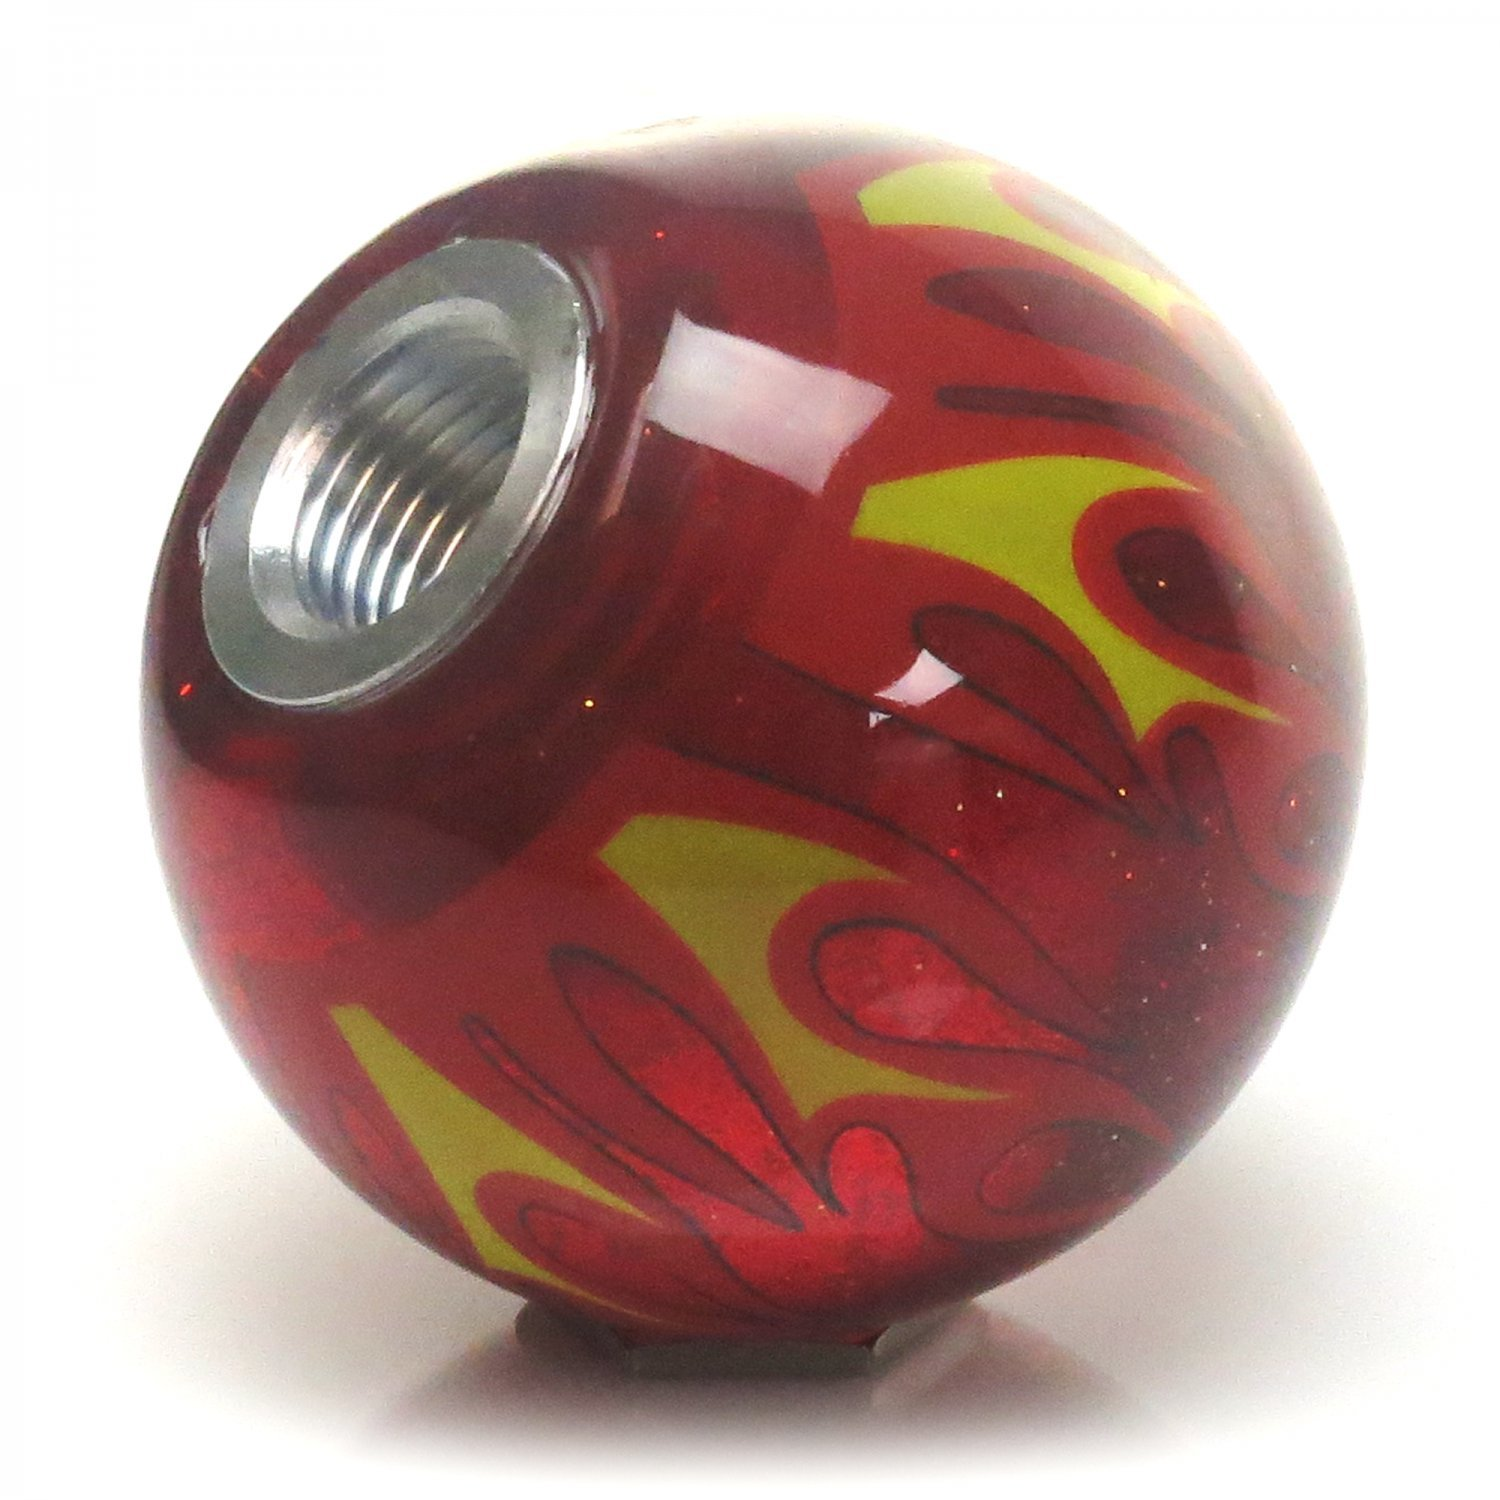 White Shift Pattern 22n American Shifter 242782 Red Flame Metal Flake Shift Knob with M16 x 1.5 Insert